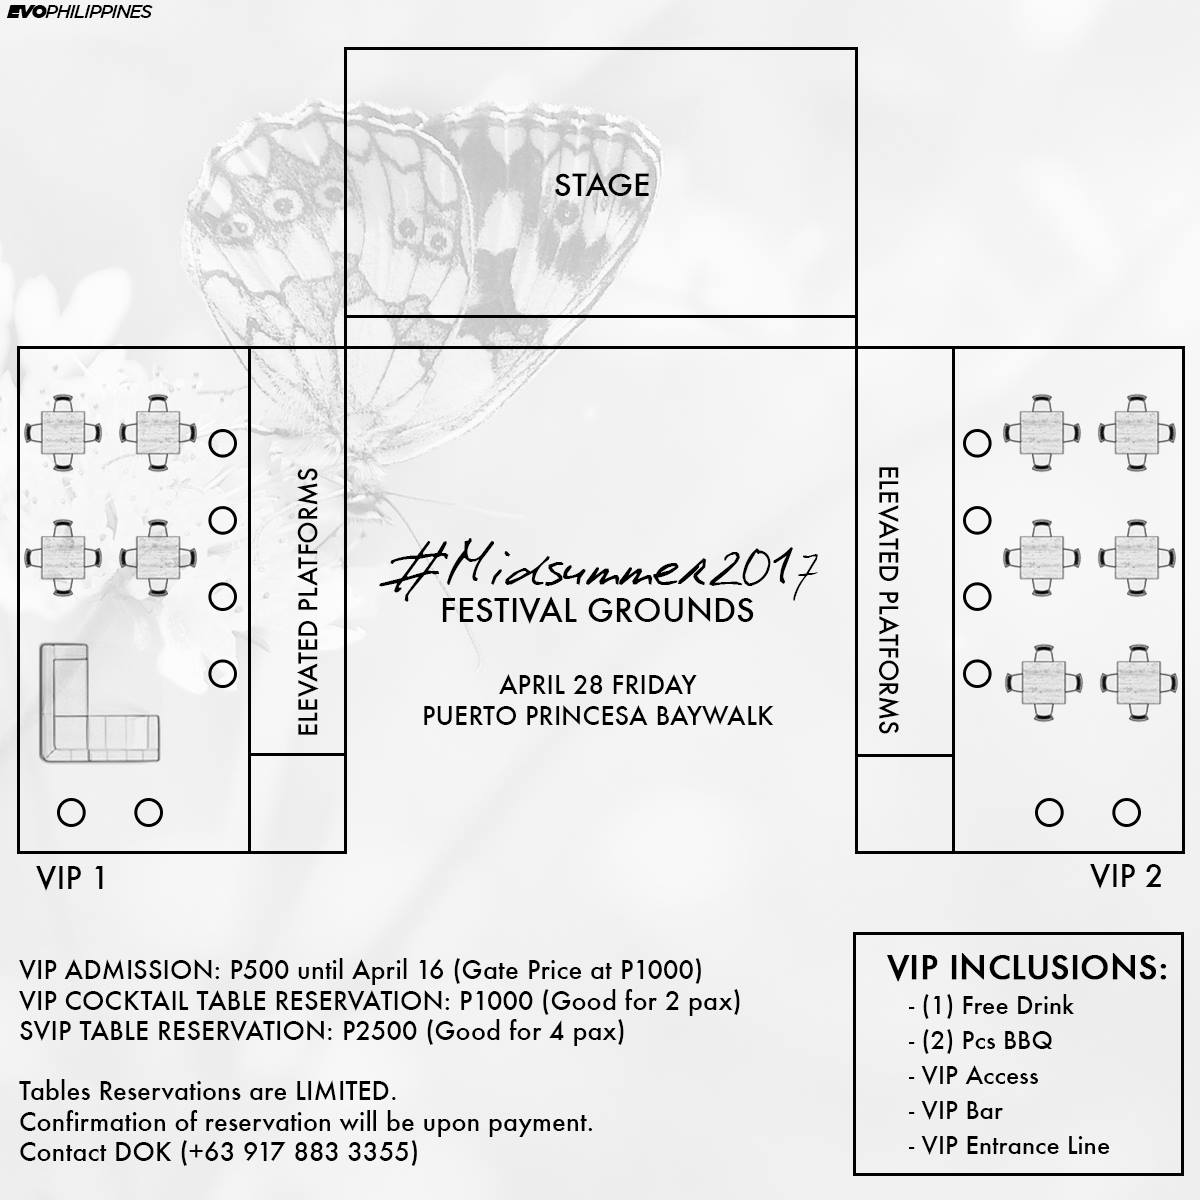 EVO Philippines Page Liked · April 11 · Edited · Midsummer VIP and SVIP Table Reservations are now open. Want to get the best view of the program? Be on the elevated platforms. Contact DOK 09178833355 ----- VIP Admission: P500 (P1000 at the gate) VIP Cocktail Tables (Good for 2): P1000 SVIP Tables (Good for 4): P2500 #Midsummer2017